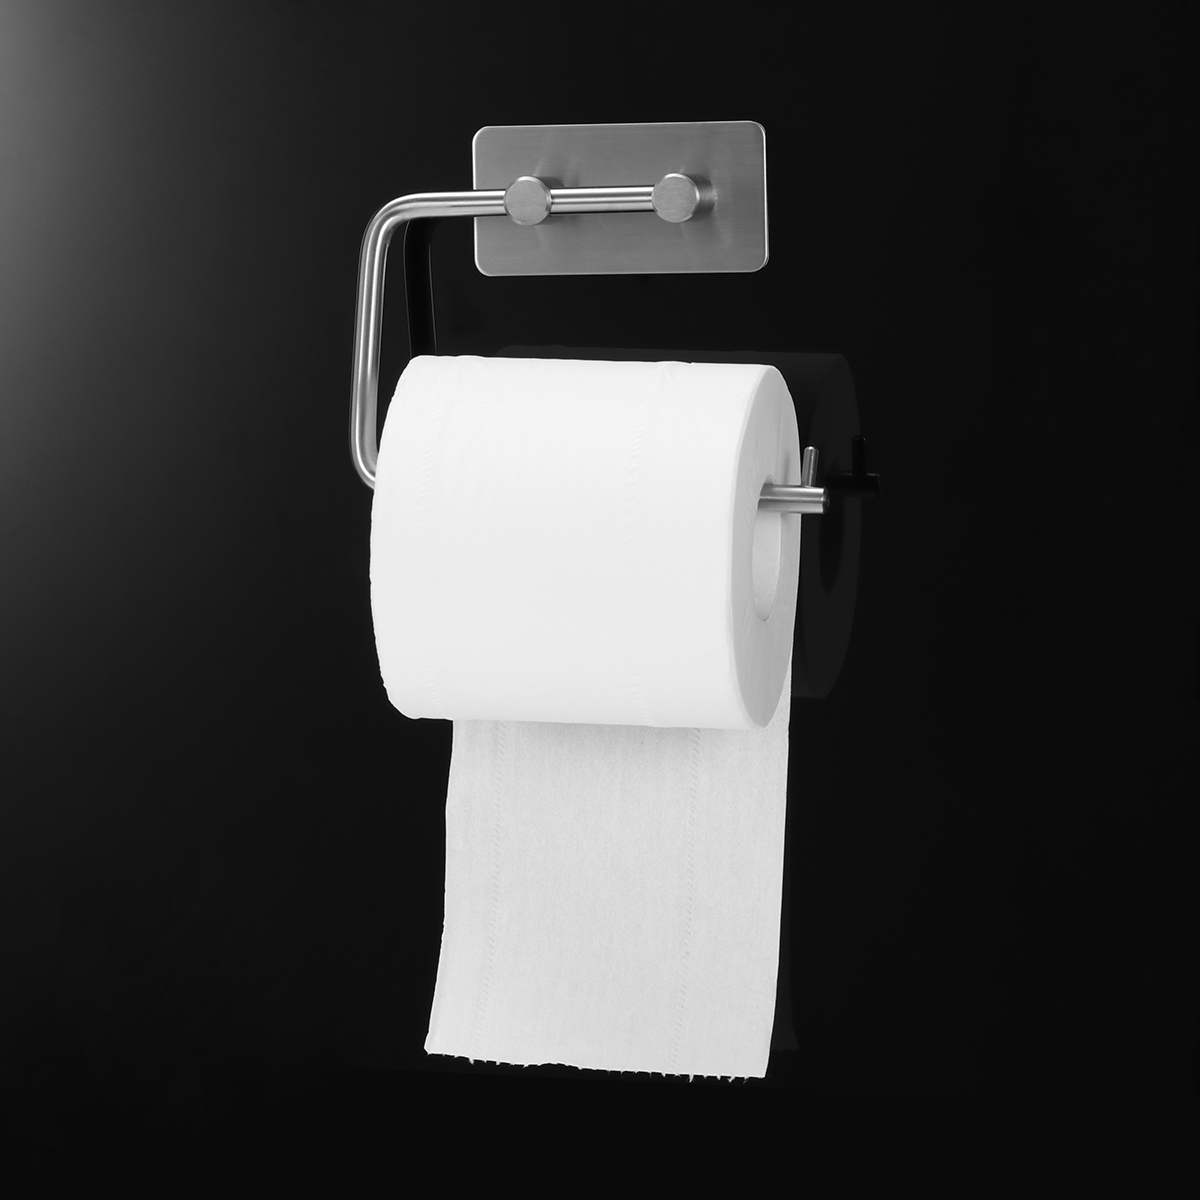 Back To Search Resultshome Improvement Bathroom Hardware Cheap Price Shamanda Sus 304 Stainless Steel Kitchen Bathroom Towel Dispenser 3m Stick Suction Cup Toilet Paper Holder Polished Finished